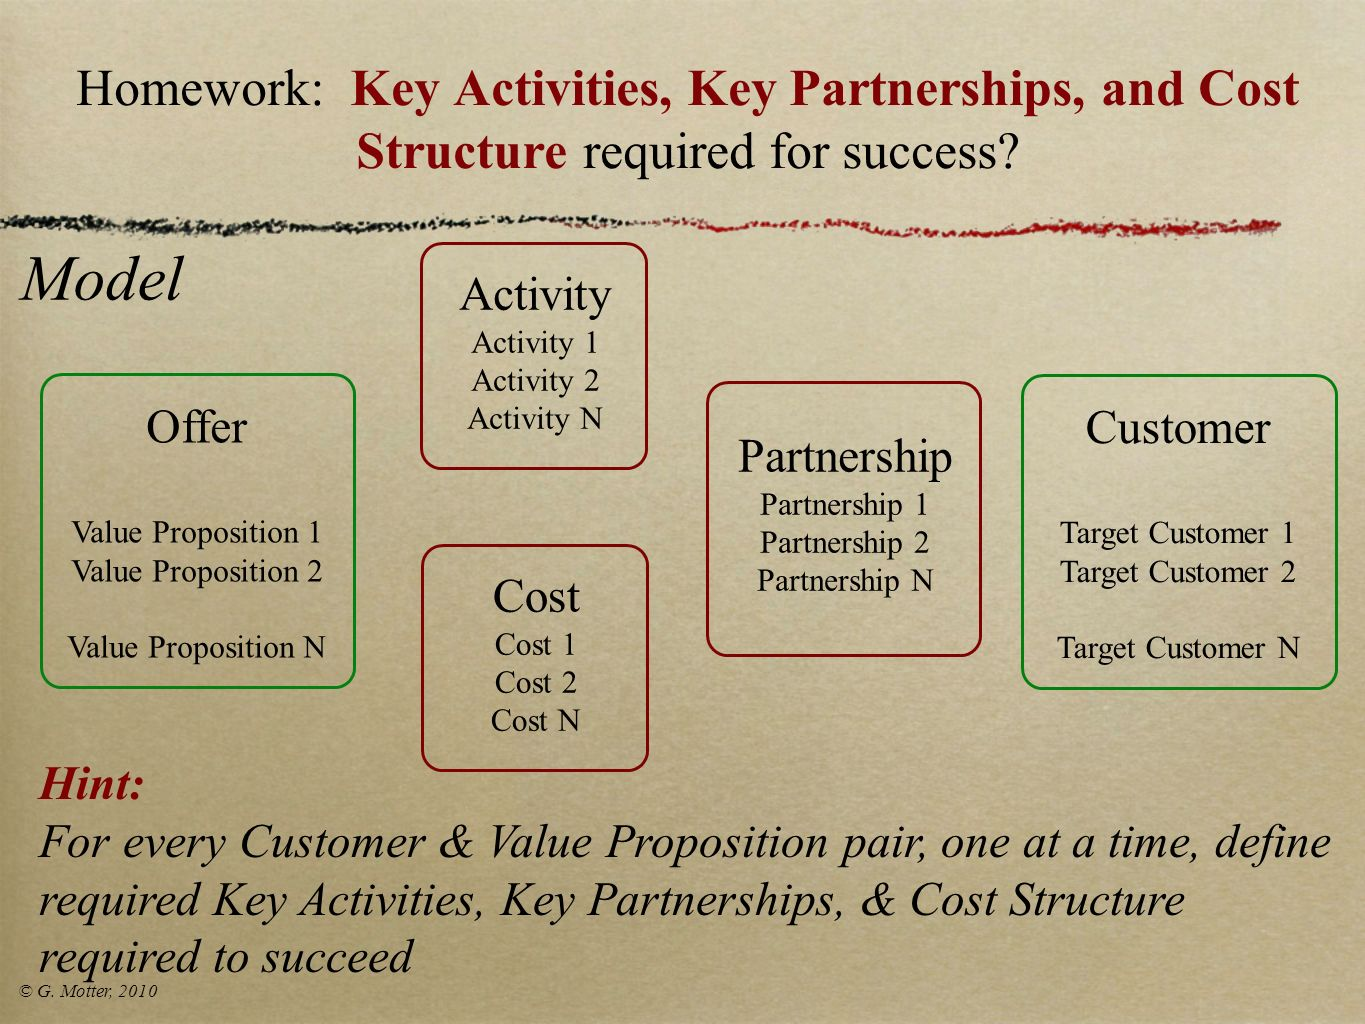 Homework: Key Activities, Key Partnerships, and Cost Structure required for success